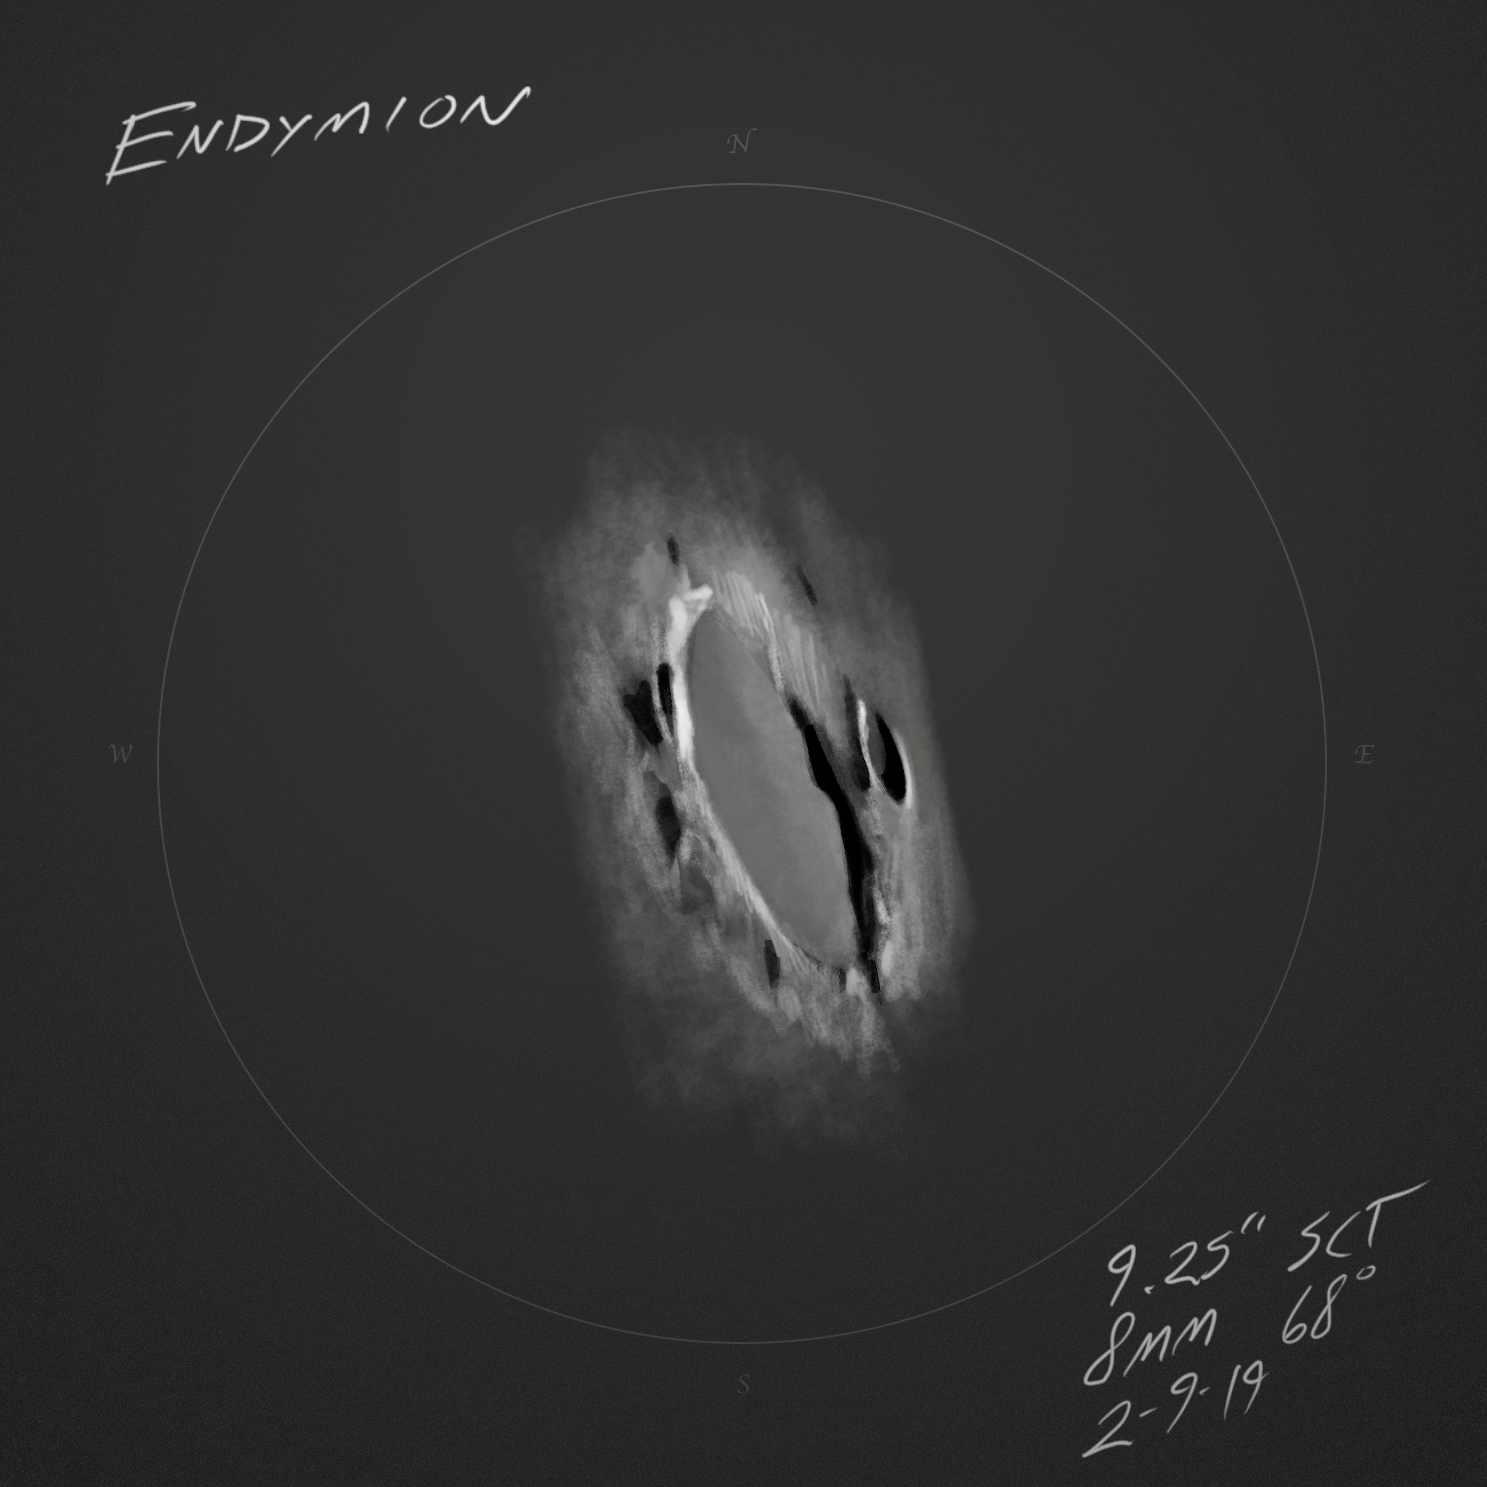 endymion.png